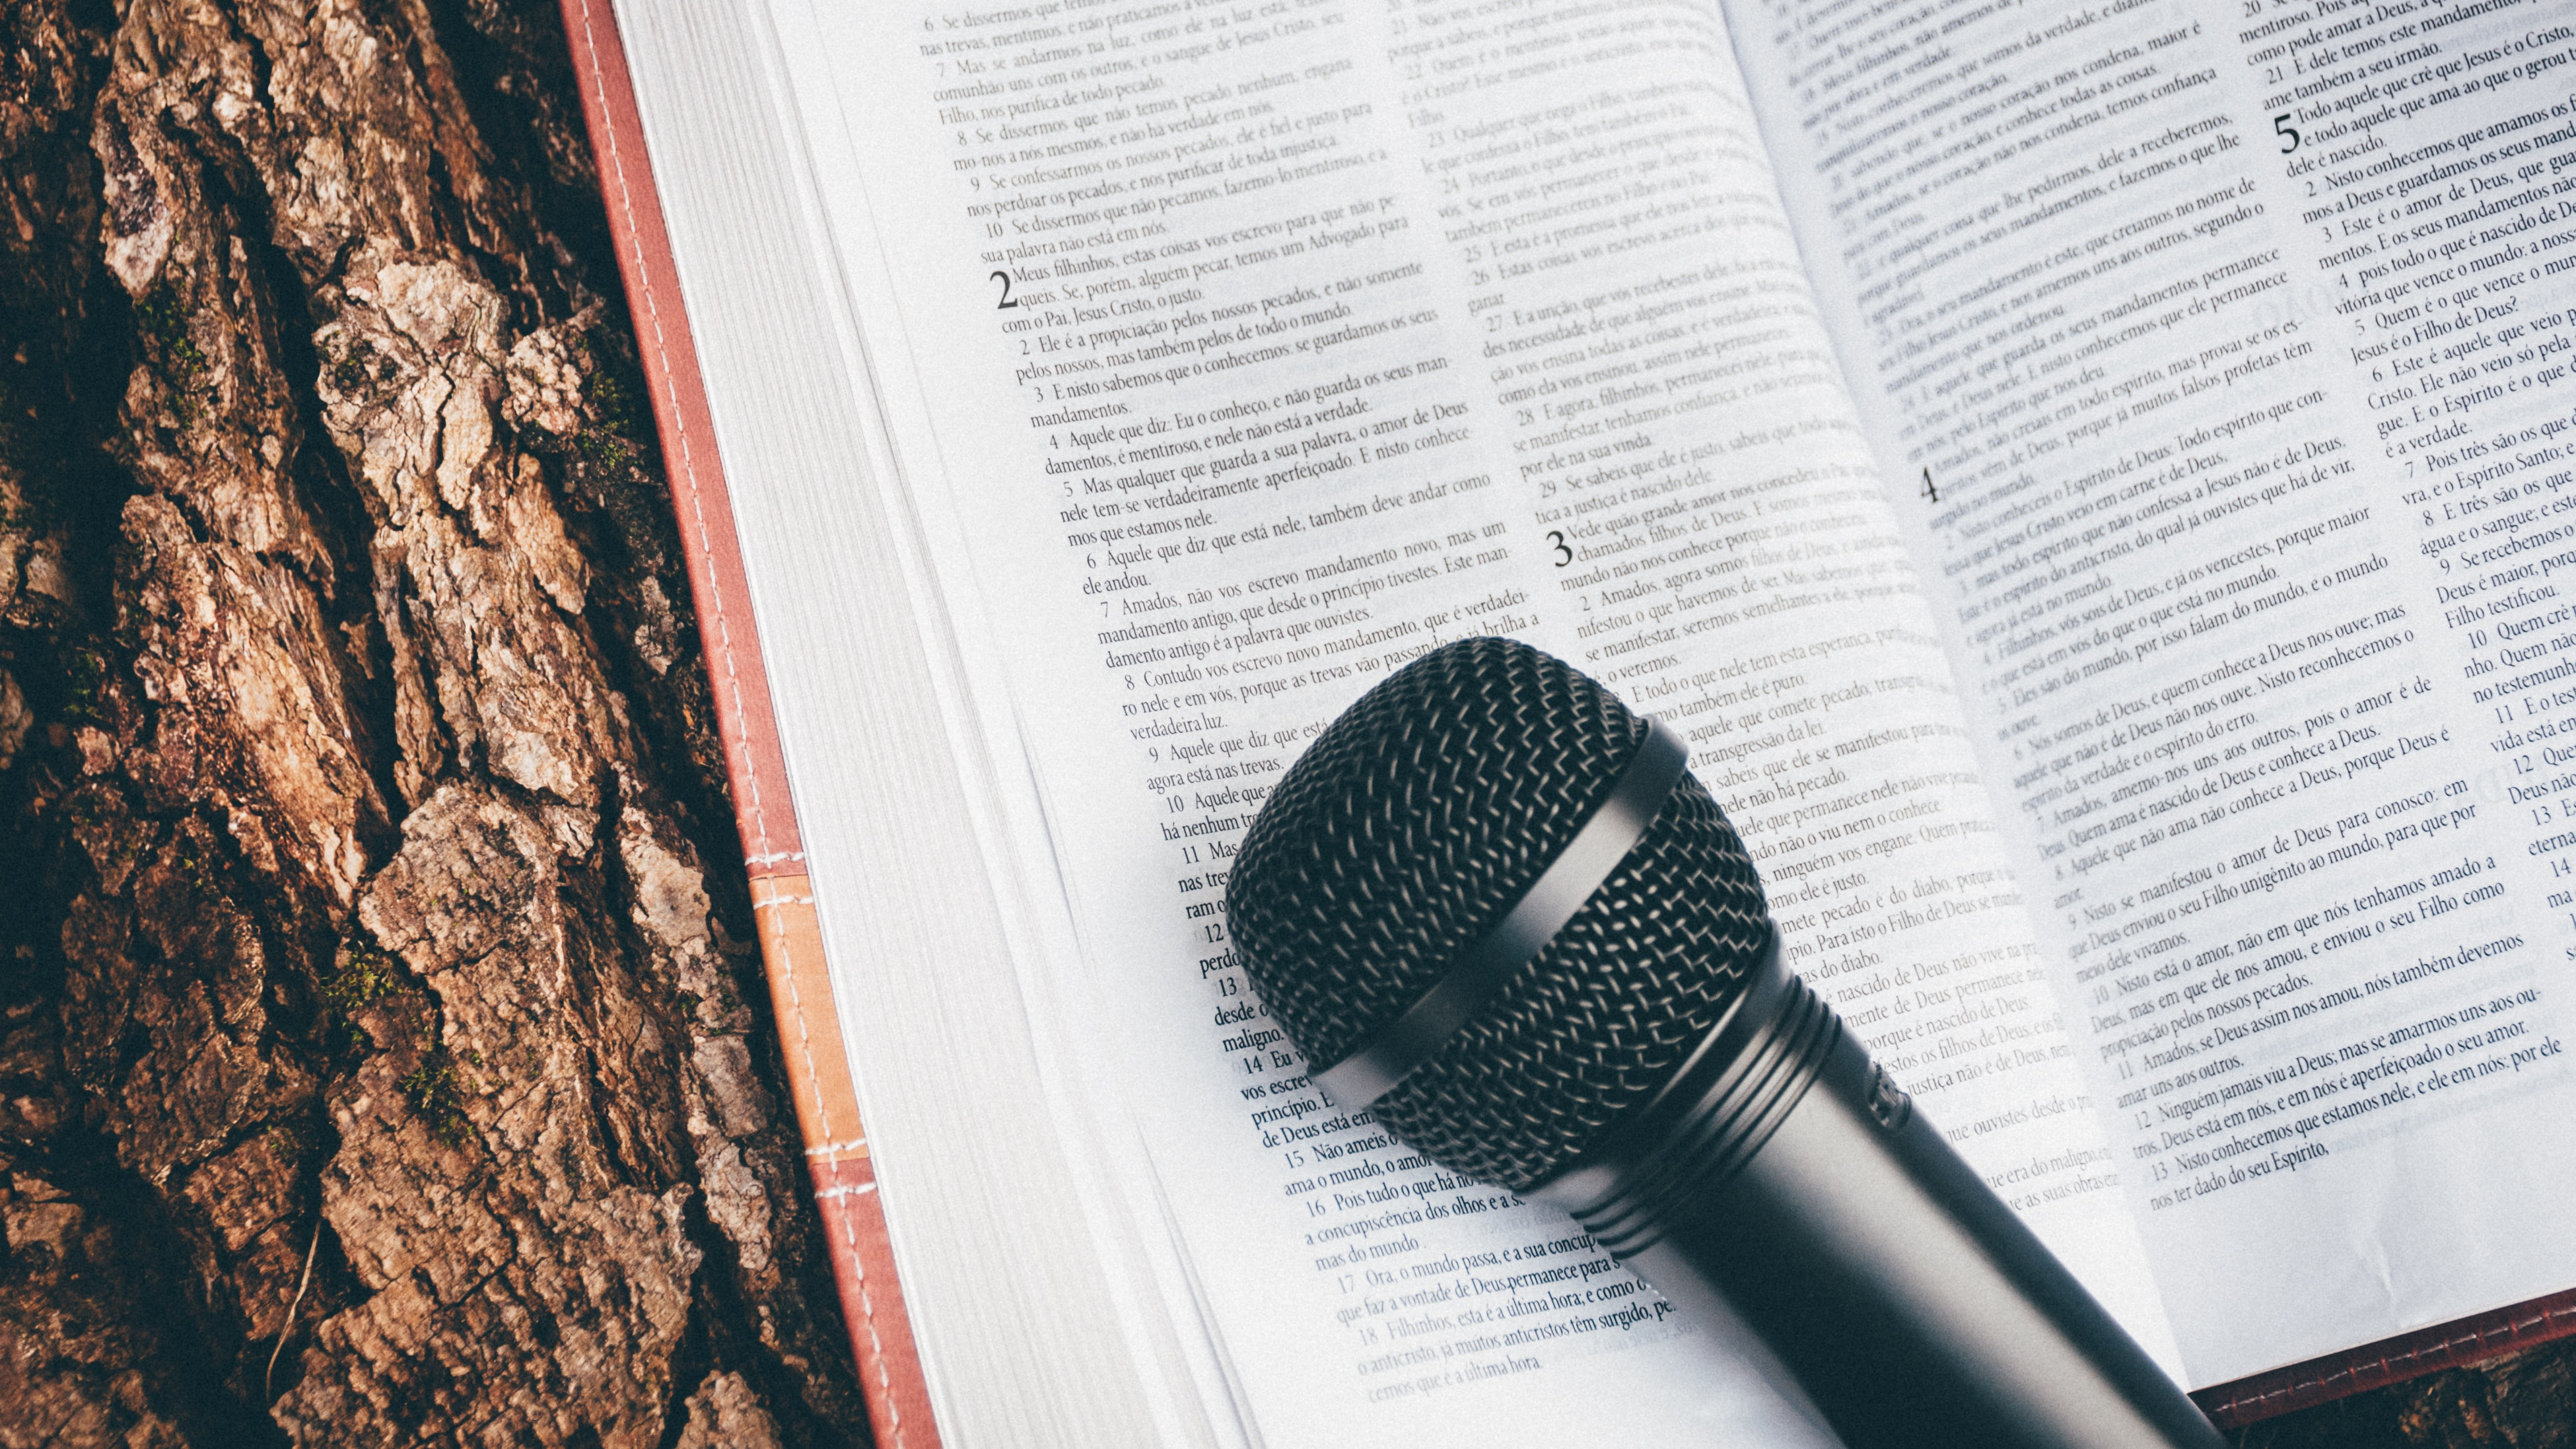 A microphone and bible resting on a tree stump